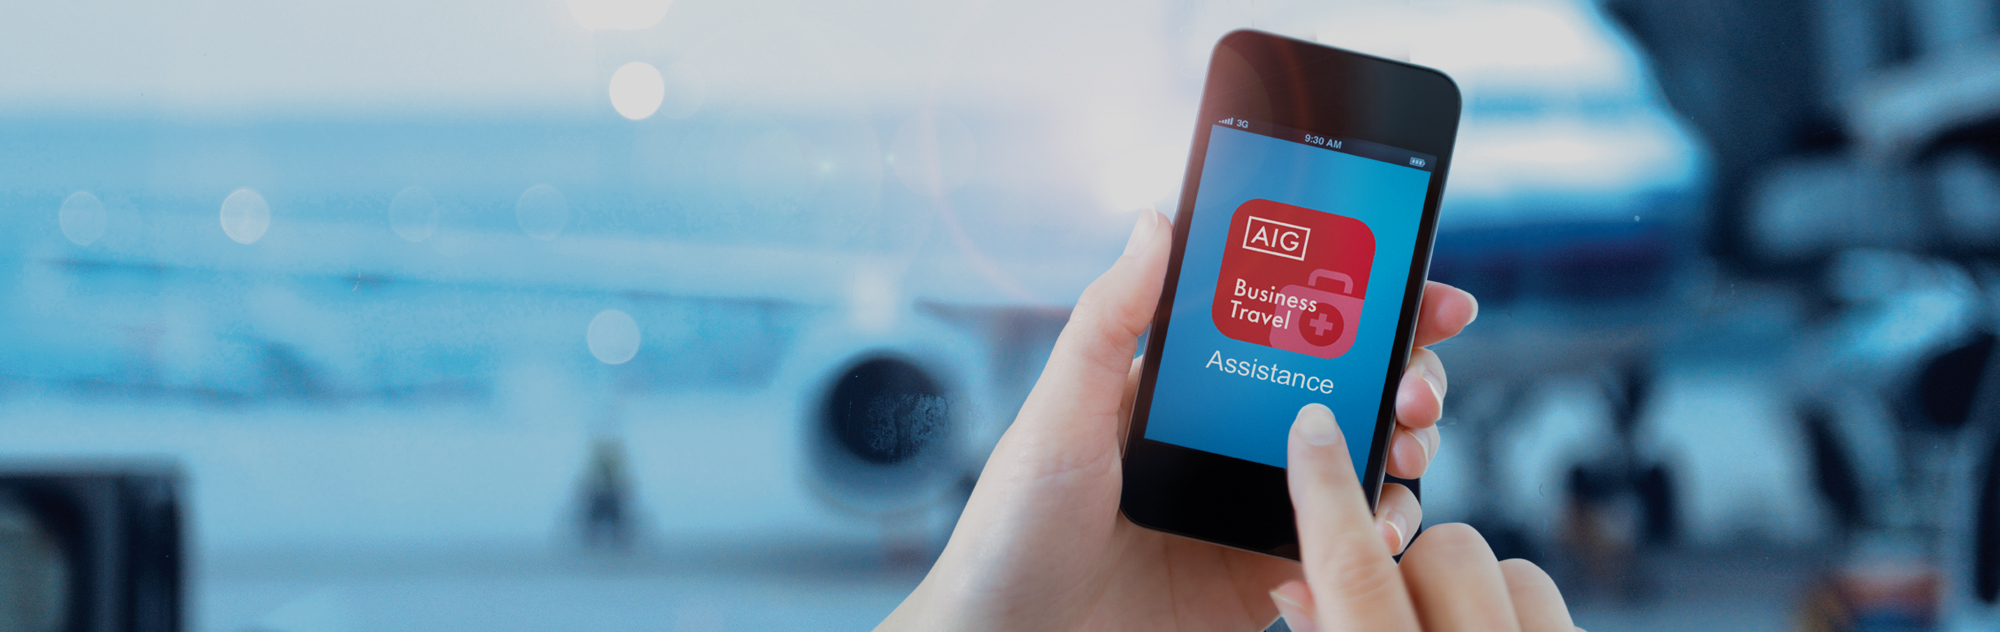 Group Plus Business Travel Insurance - Insurance from AIG ...